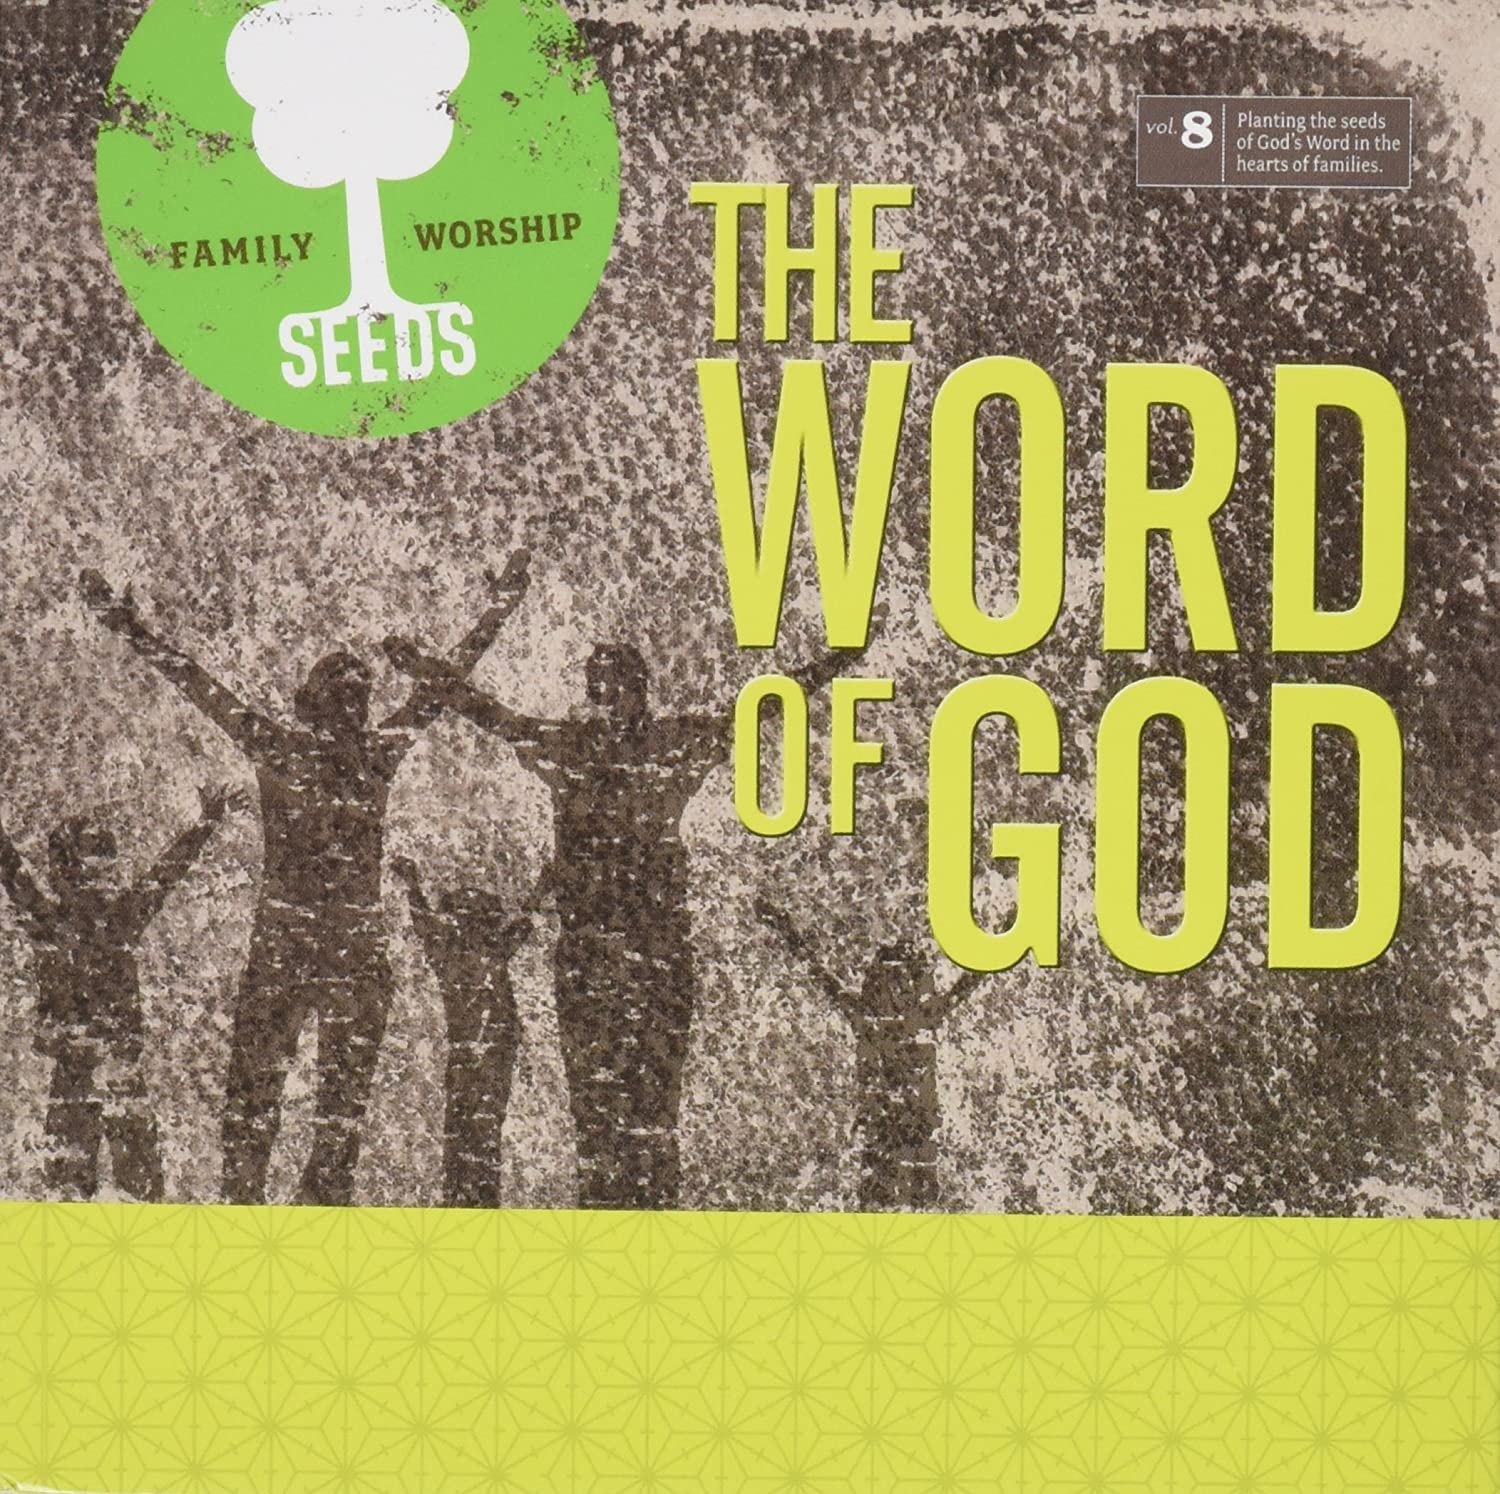 Seeds Family Max 74% OFF Very popular Worship: The Word of 8 Vol. God